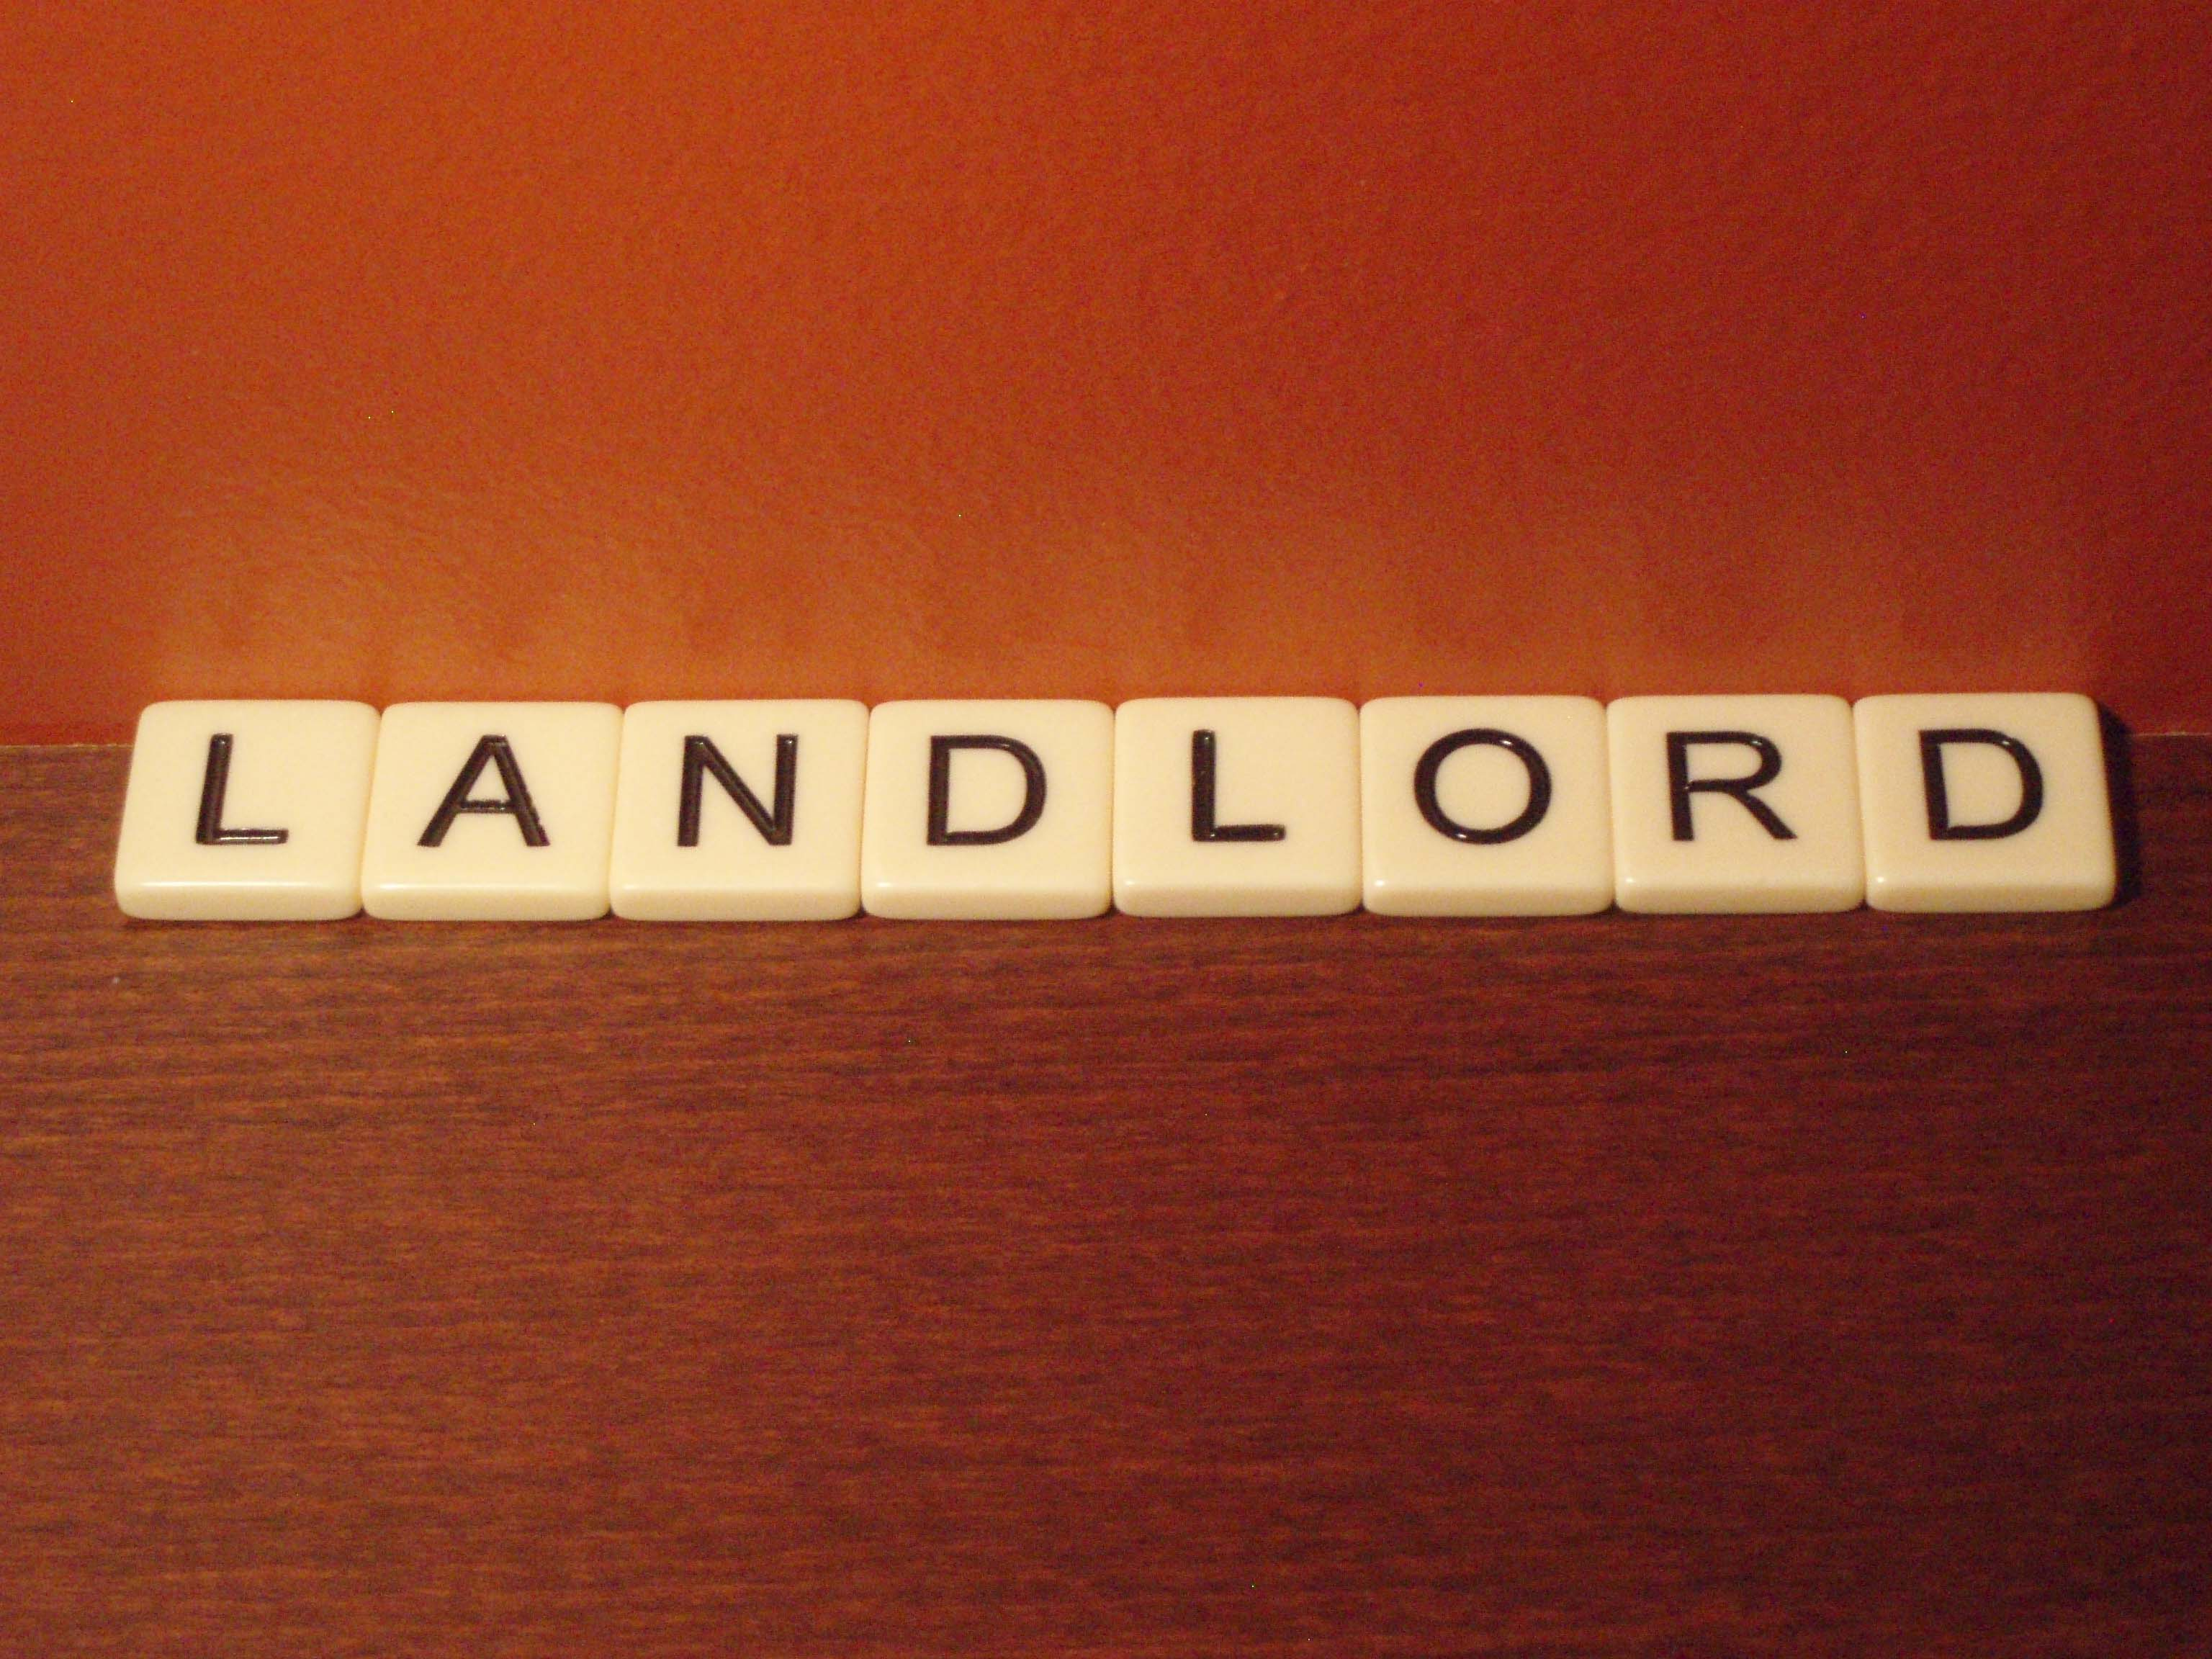 What is a Landlord? - Real Estate Definition